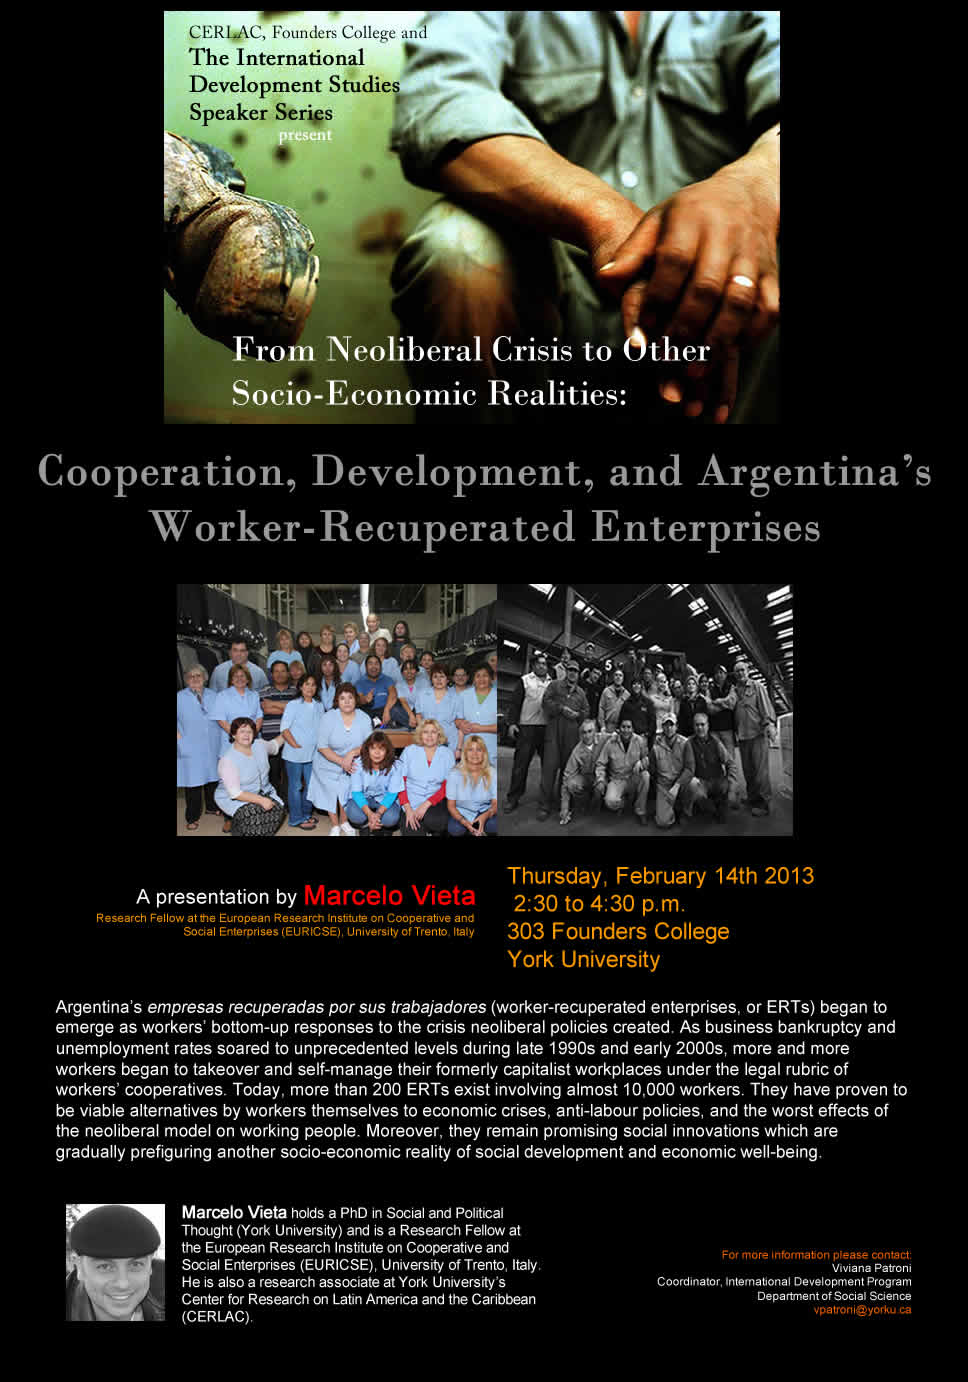 Argentina's Worker-Recuperated Enterprises